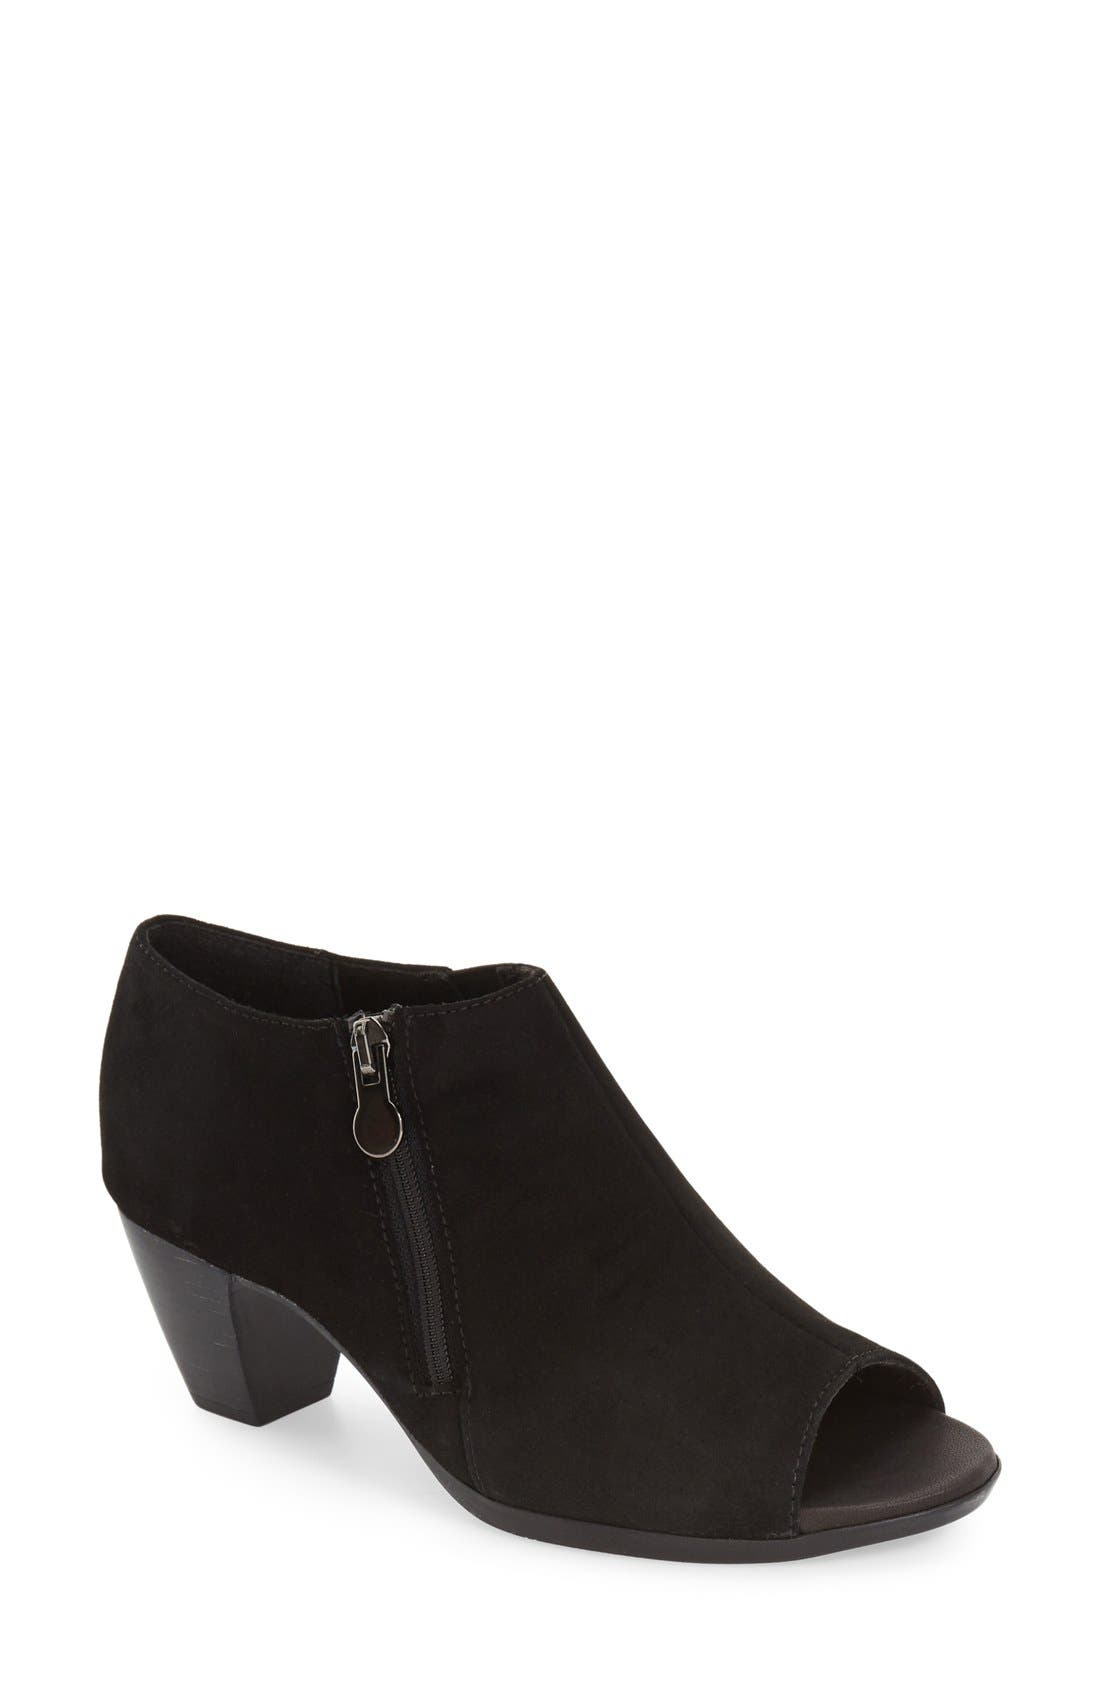 Munro 'Luisa' Open Toe Bootie (Women)